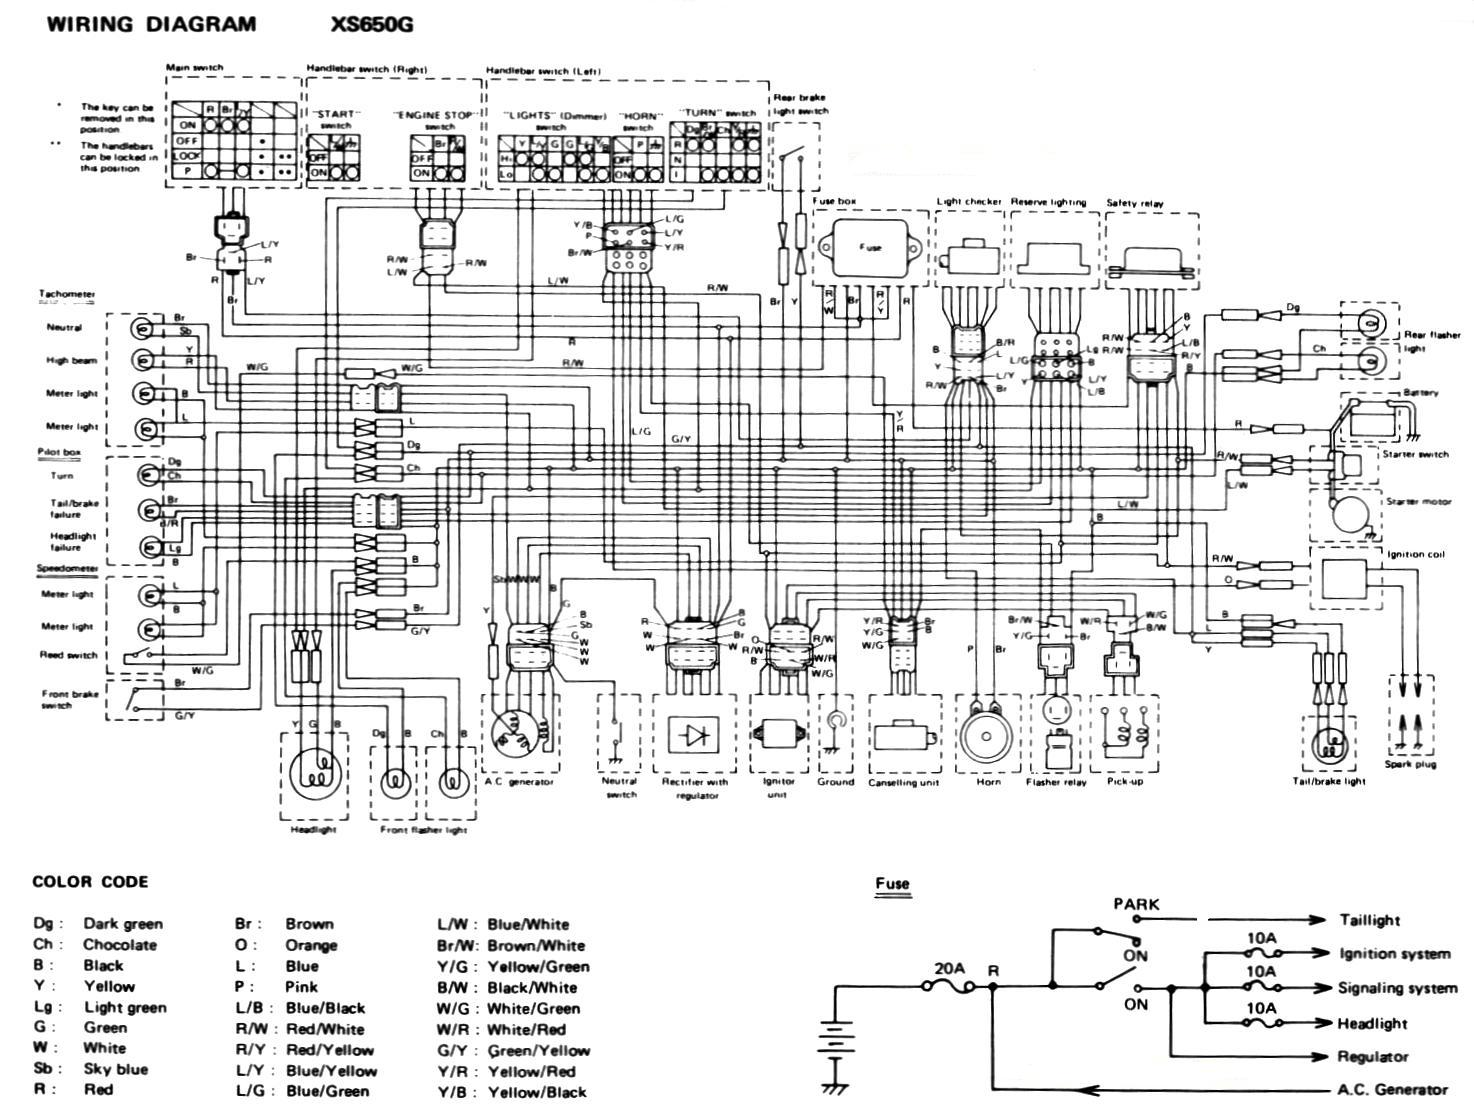 1978 Xs650 Wiring Diagram - Wiring Diagram •